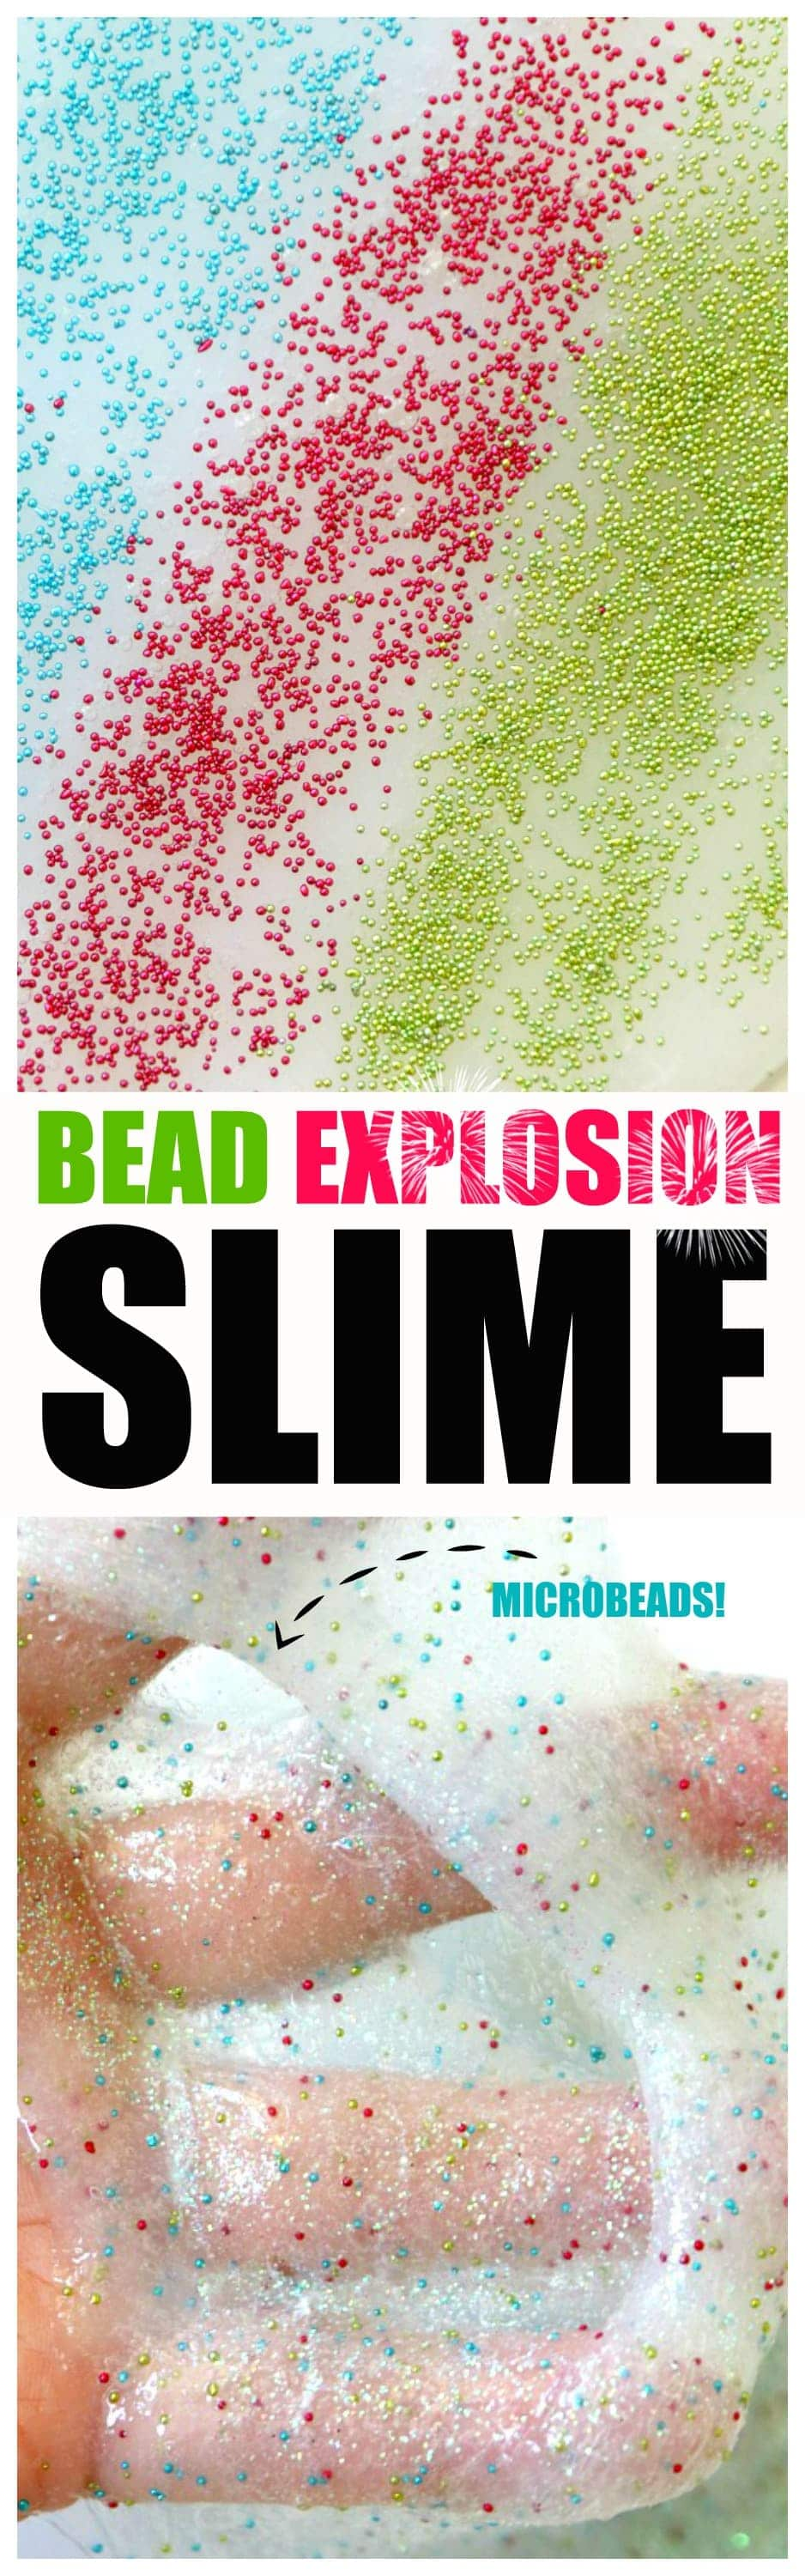 Bead Explosion Slime : how to make fluffy slime with mini micro beads for a fun sensory experience slime - TOP slime site